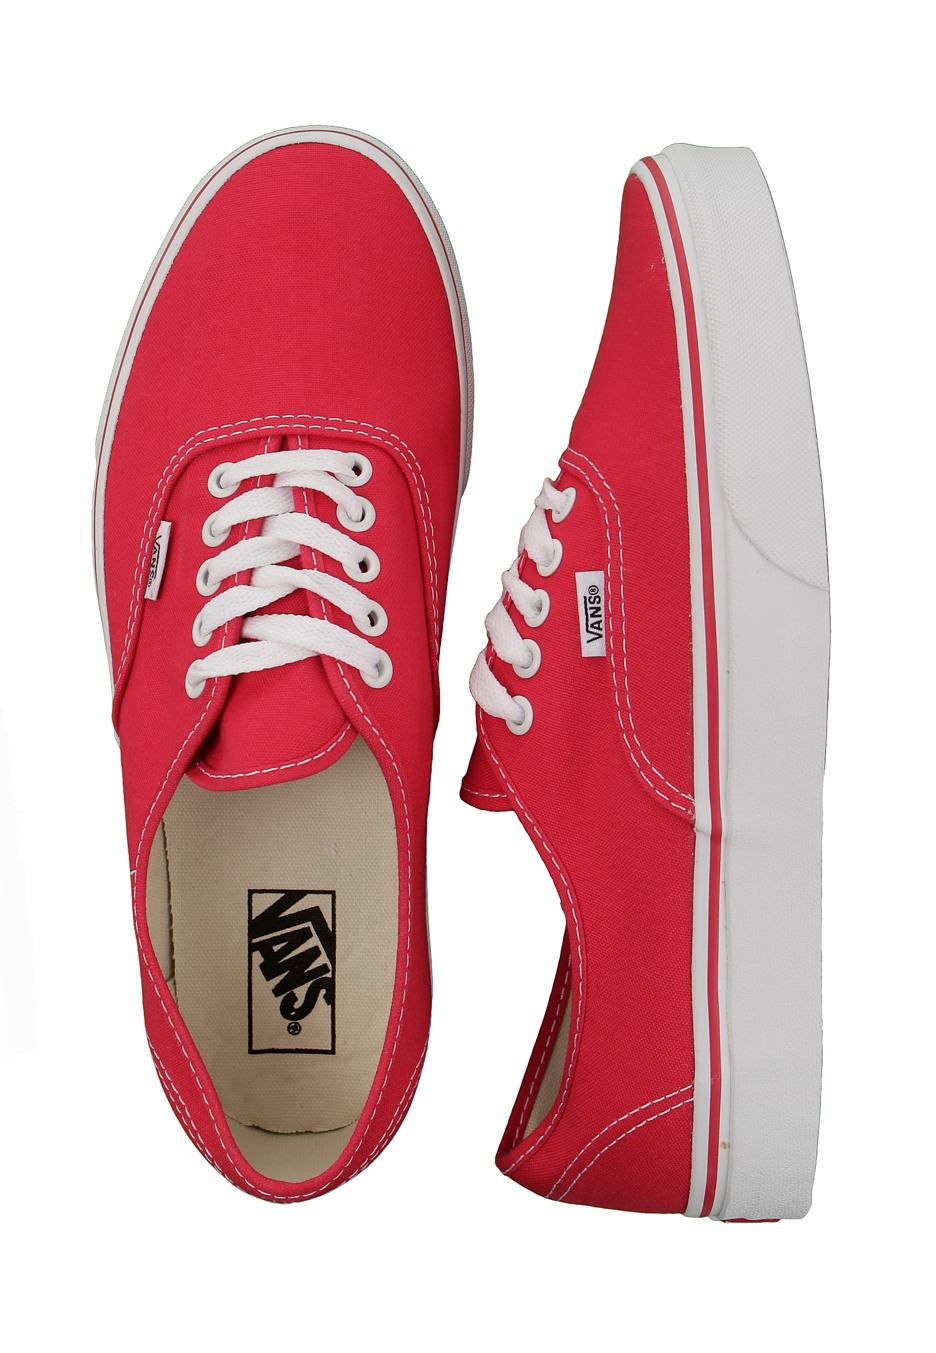 d2b8f3bac1 Vans - Authentic Red - Shoes - Impericon.com Worldwide